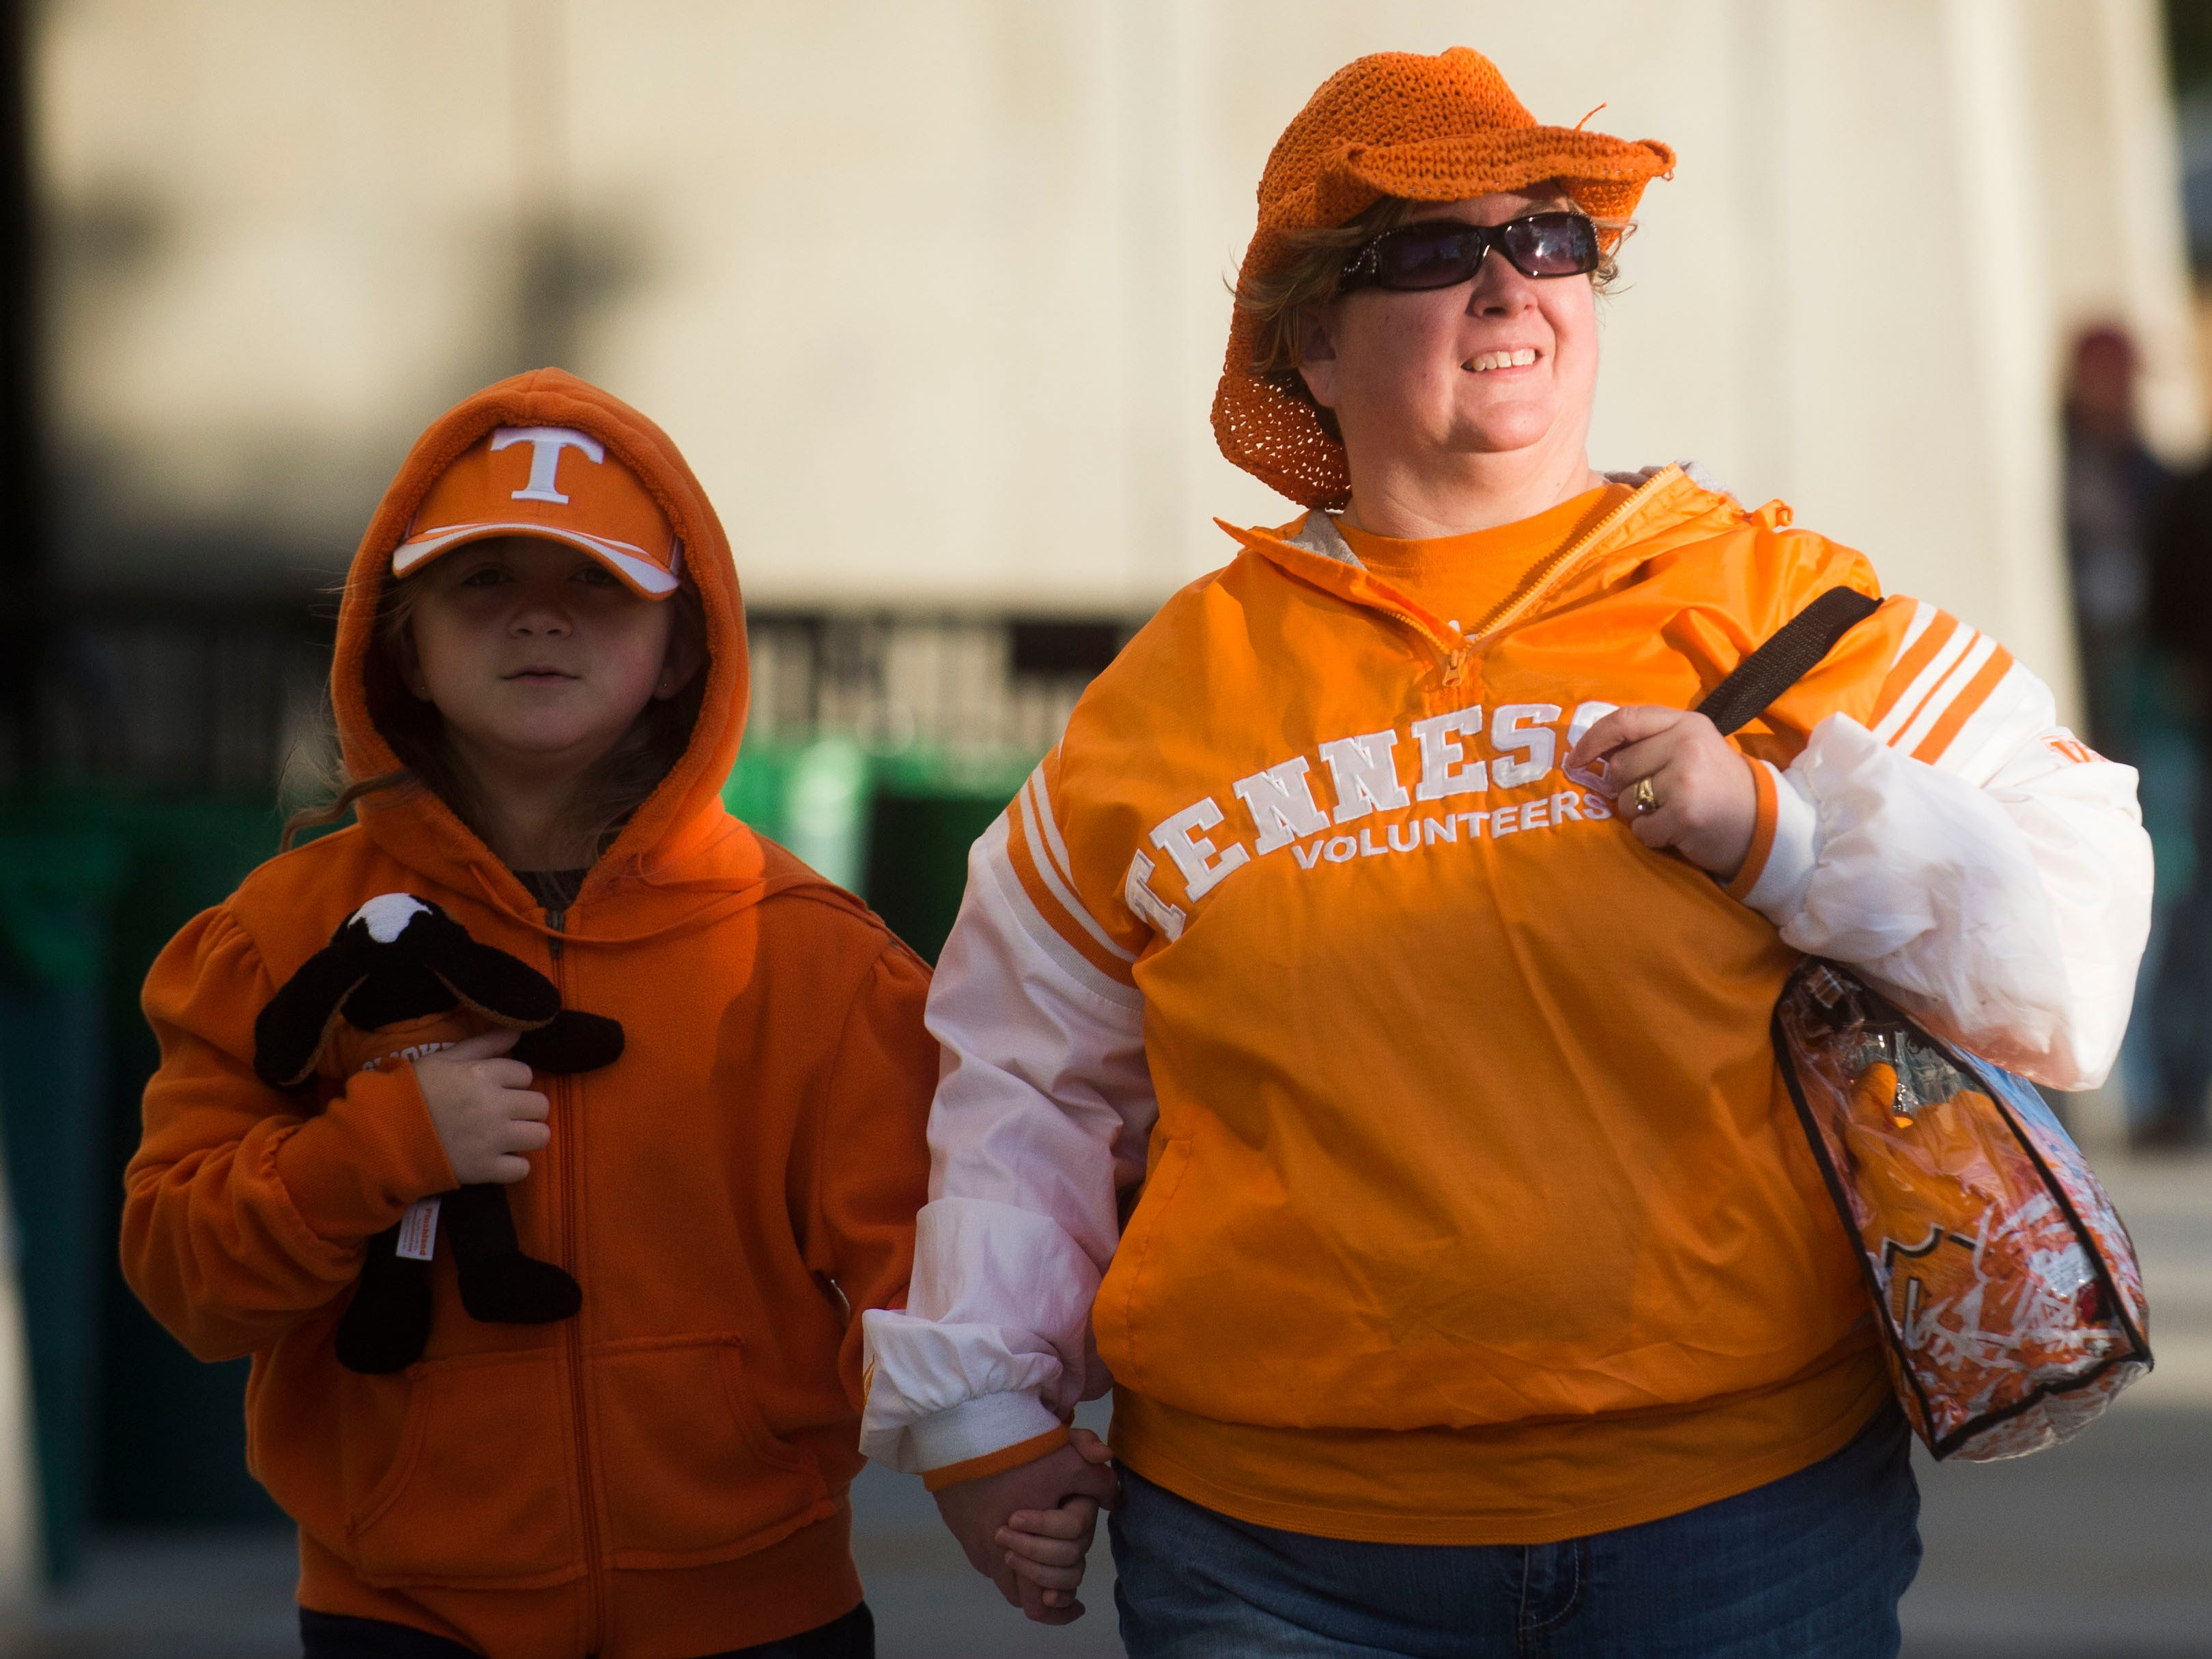 Alexis McGannon, 8, and her mom Carrie of Jasper, Tenn. walk around before a game between Tennessee and South Carolina at Williams-Brice Stadium Saturday, Oct. 27, 2018. This is Alexis' first game.